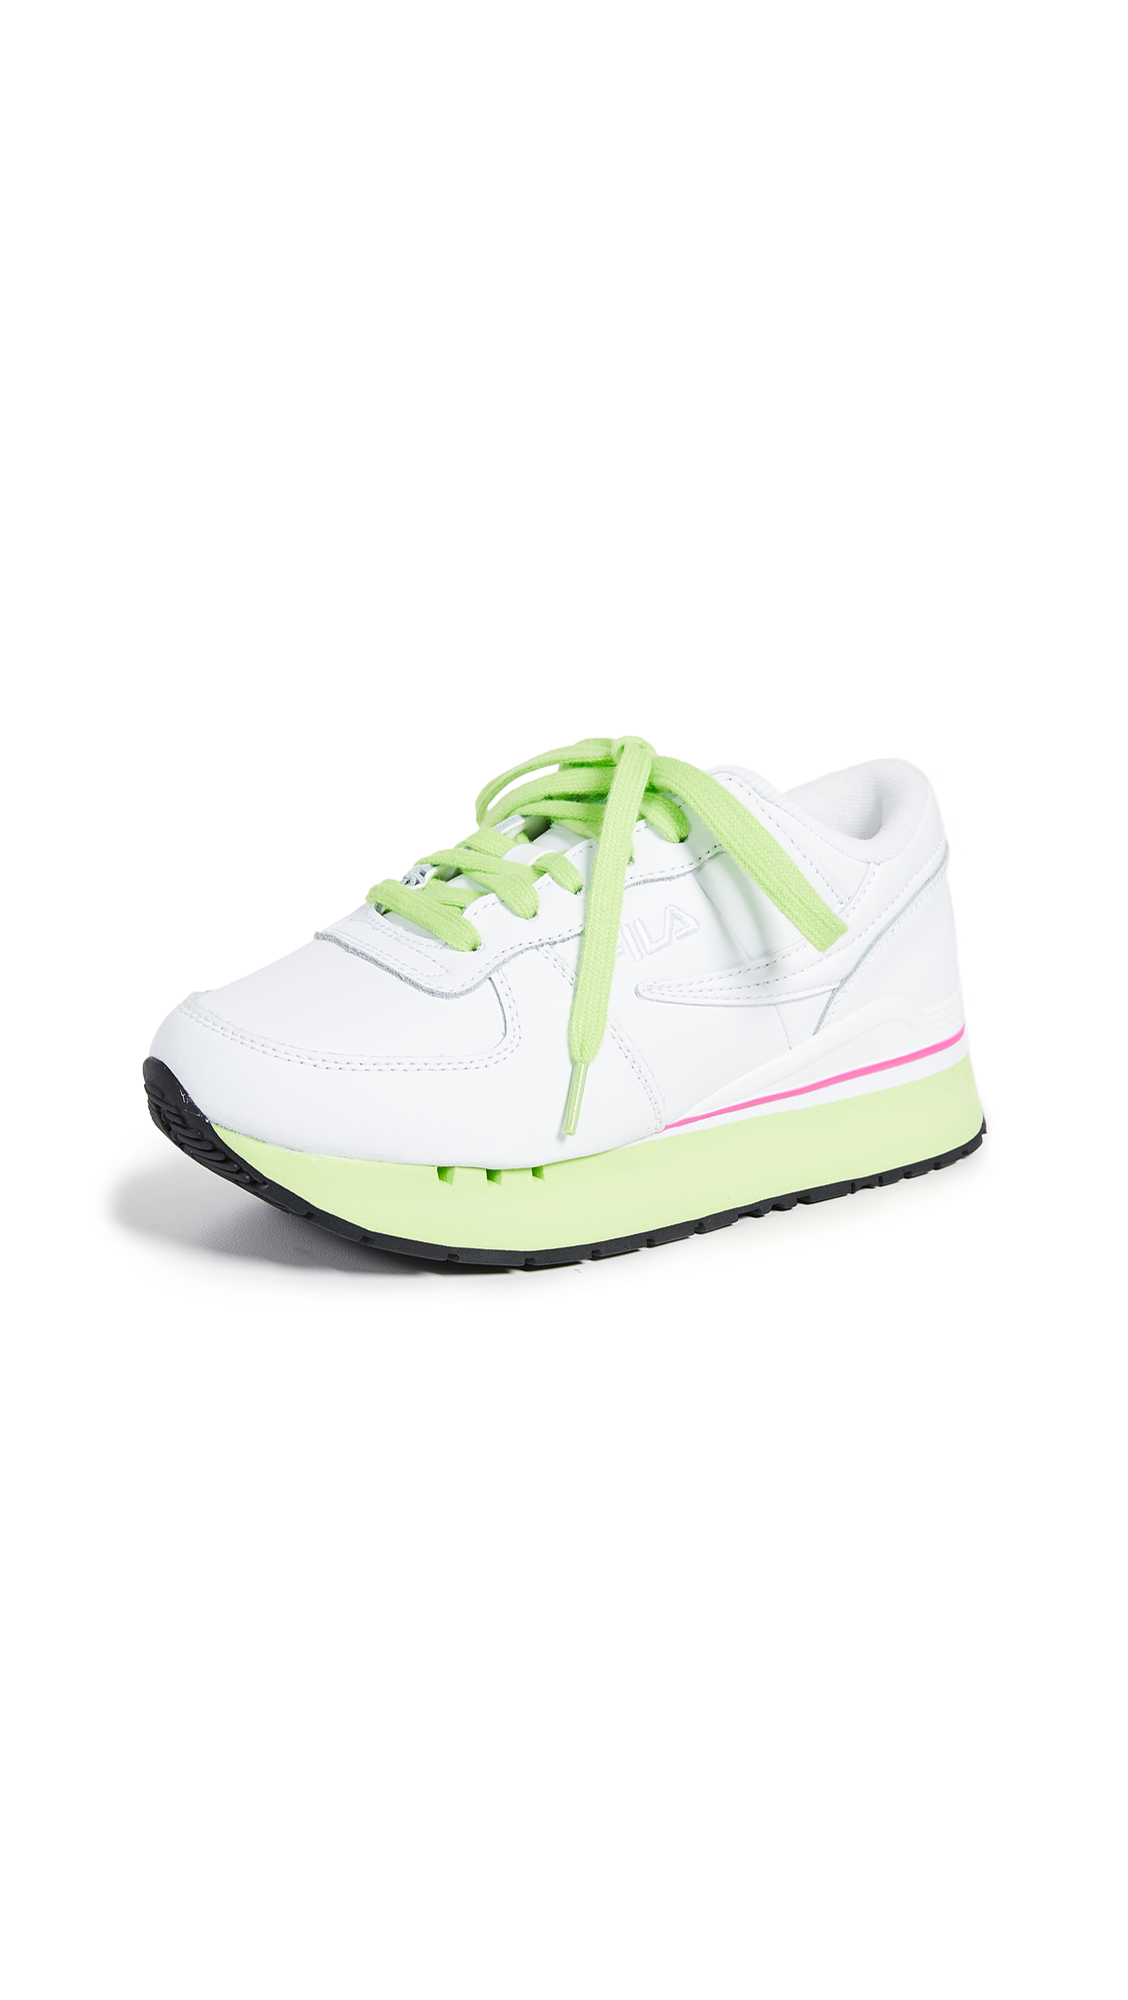 Fila Original Running Primavera Sneakers - White/Green/Fuchsia